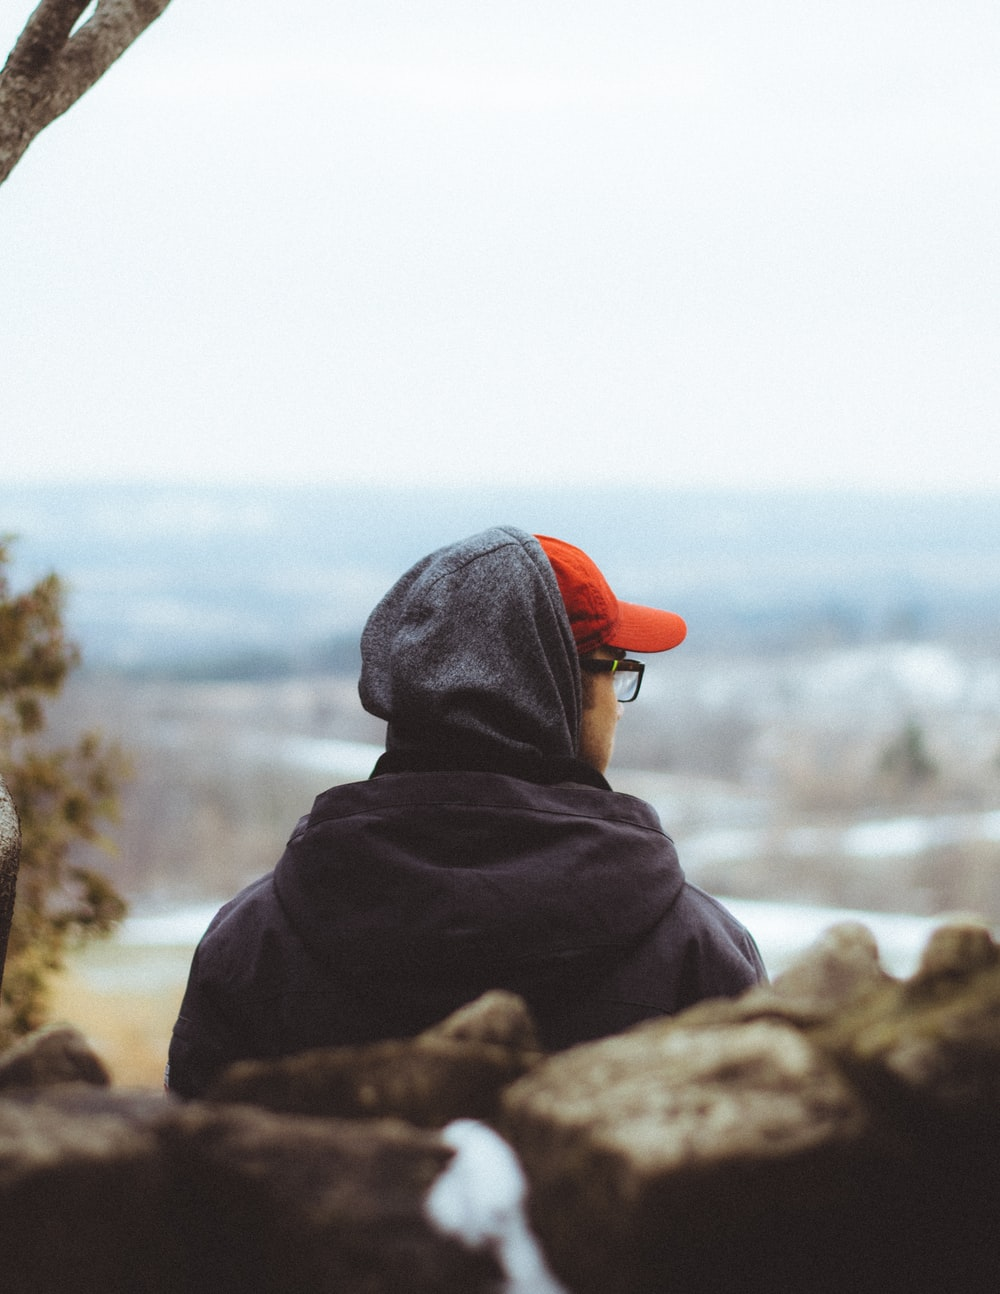 person in black hoodie and orange knit cap sitting on rock near body of water during